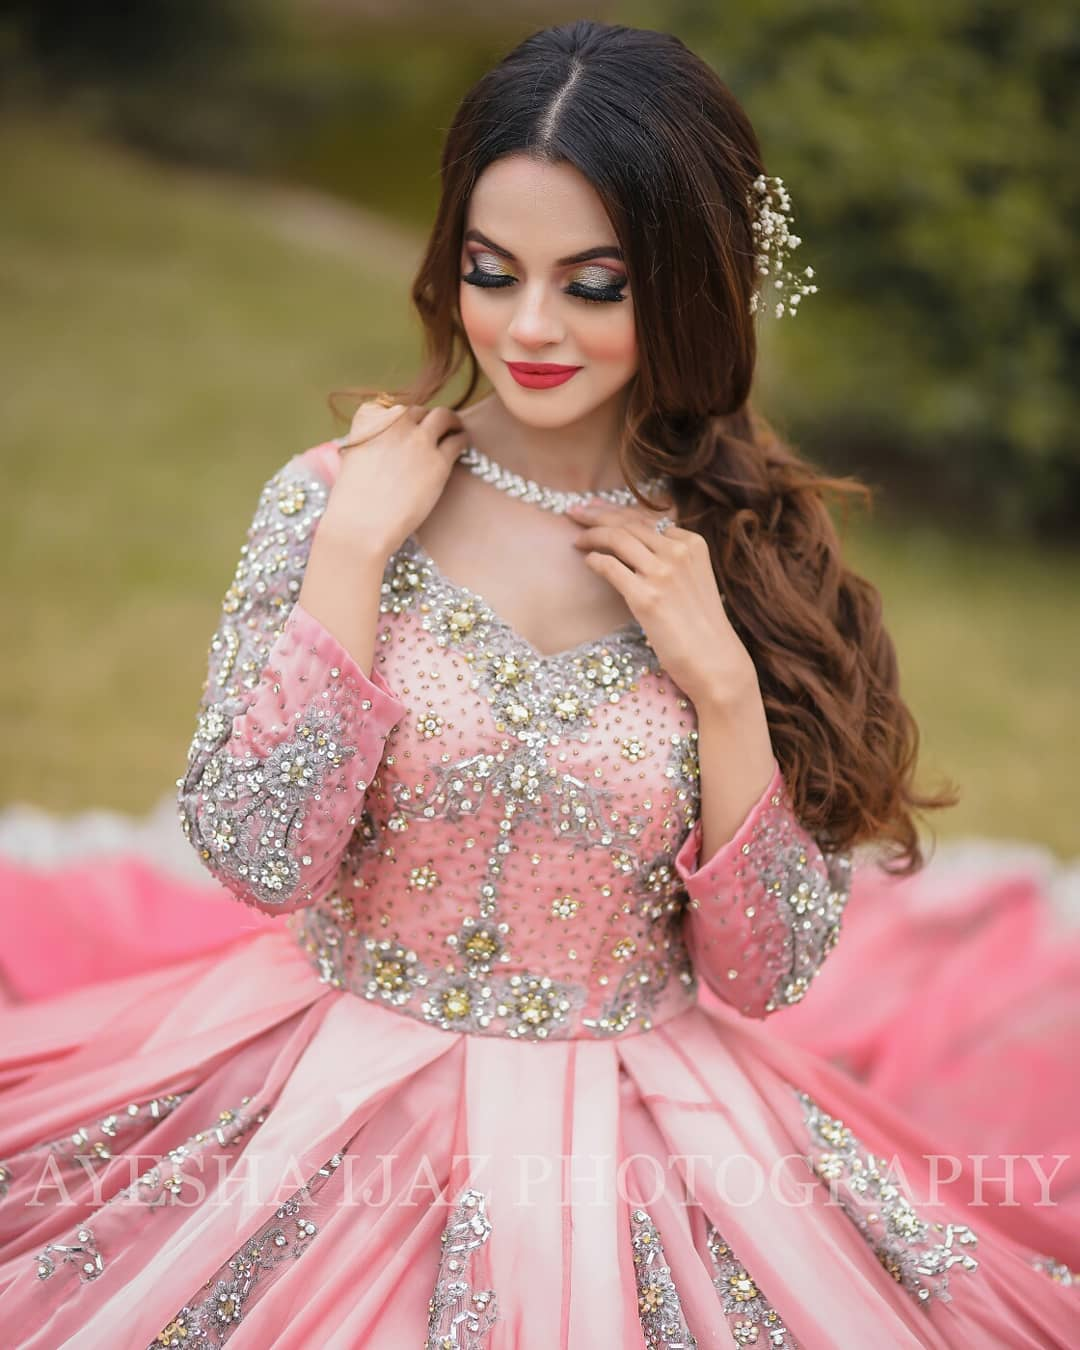 Saad S Sister In Ehd E Wafa Komal Meer S Latest Photo Shoot Reviewit Pk